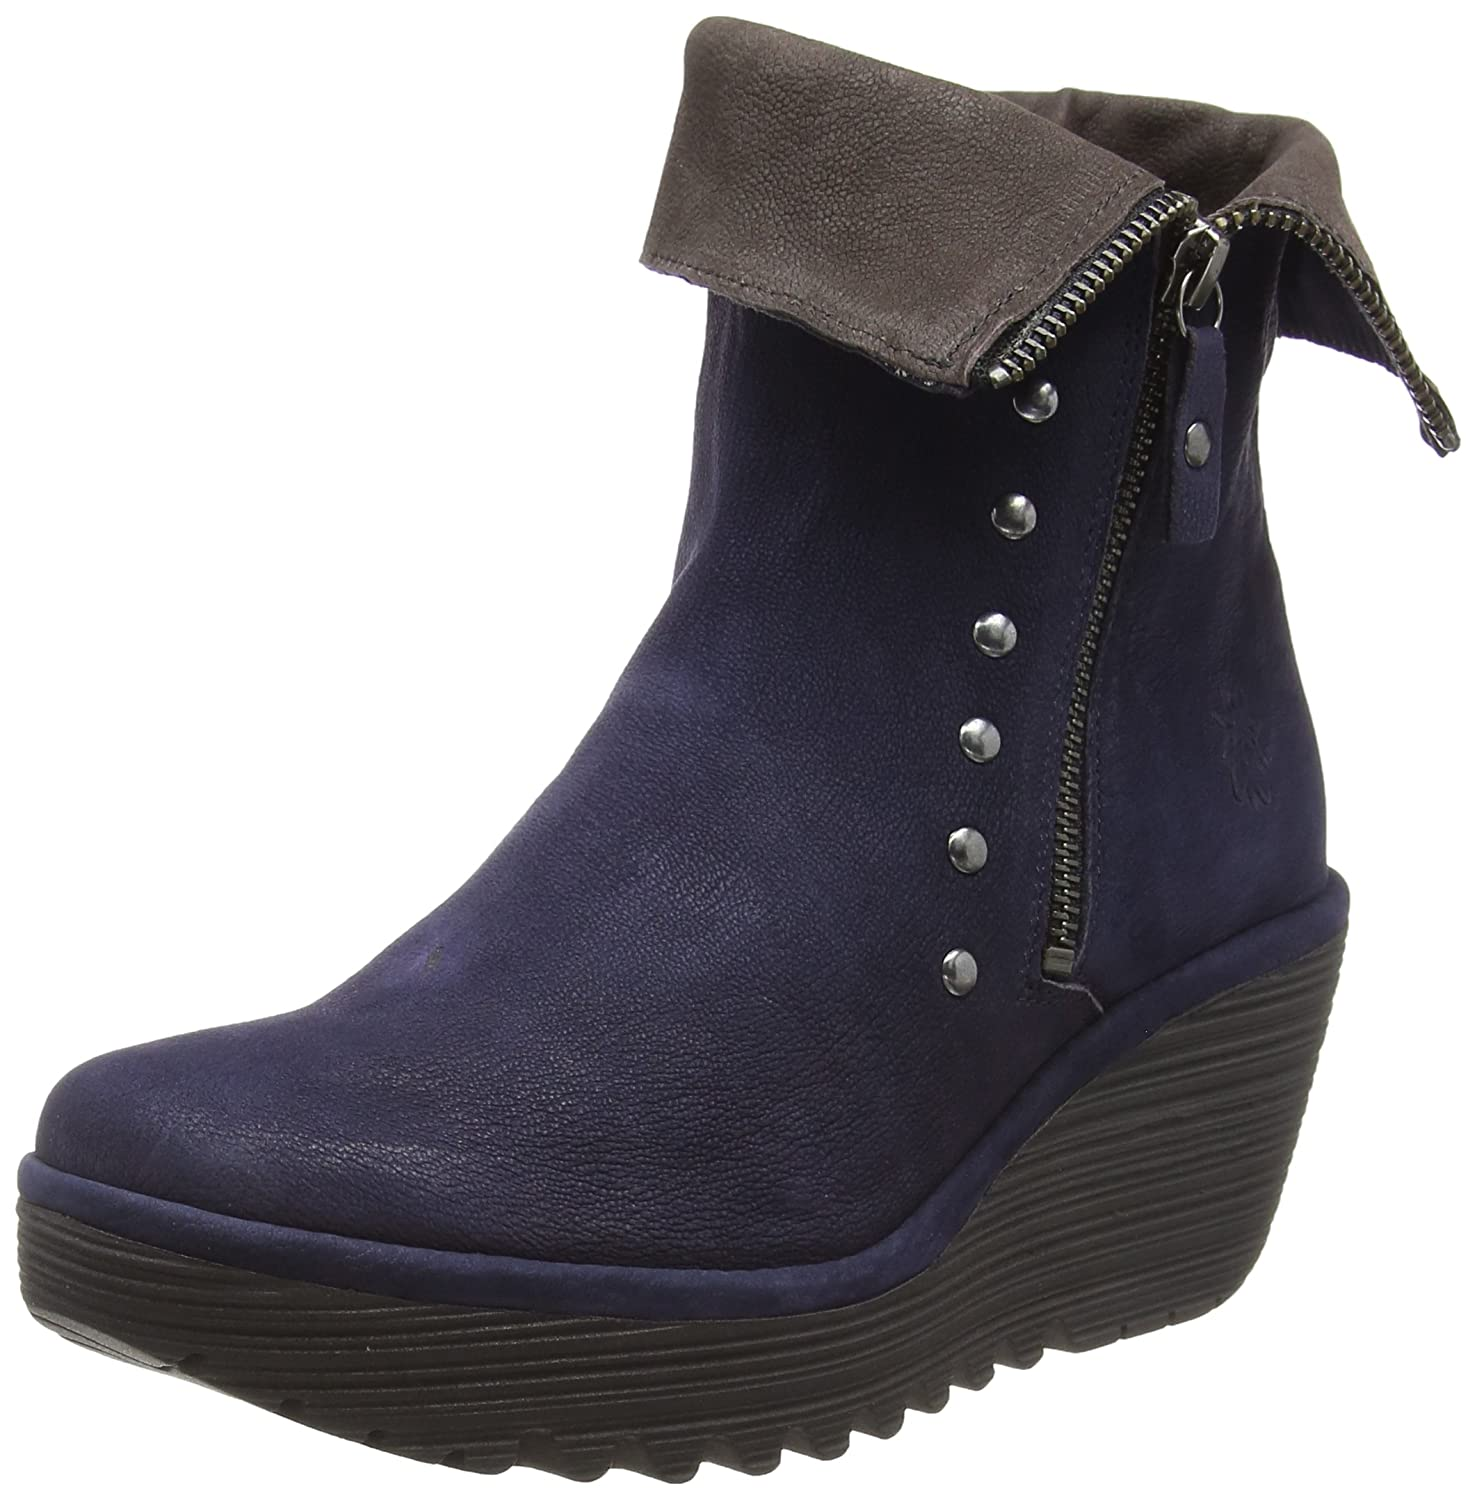 Bleu (Ocean Chocolate 002) Fly London Yemi902fly, Bottes Classiques Femme